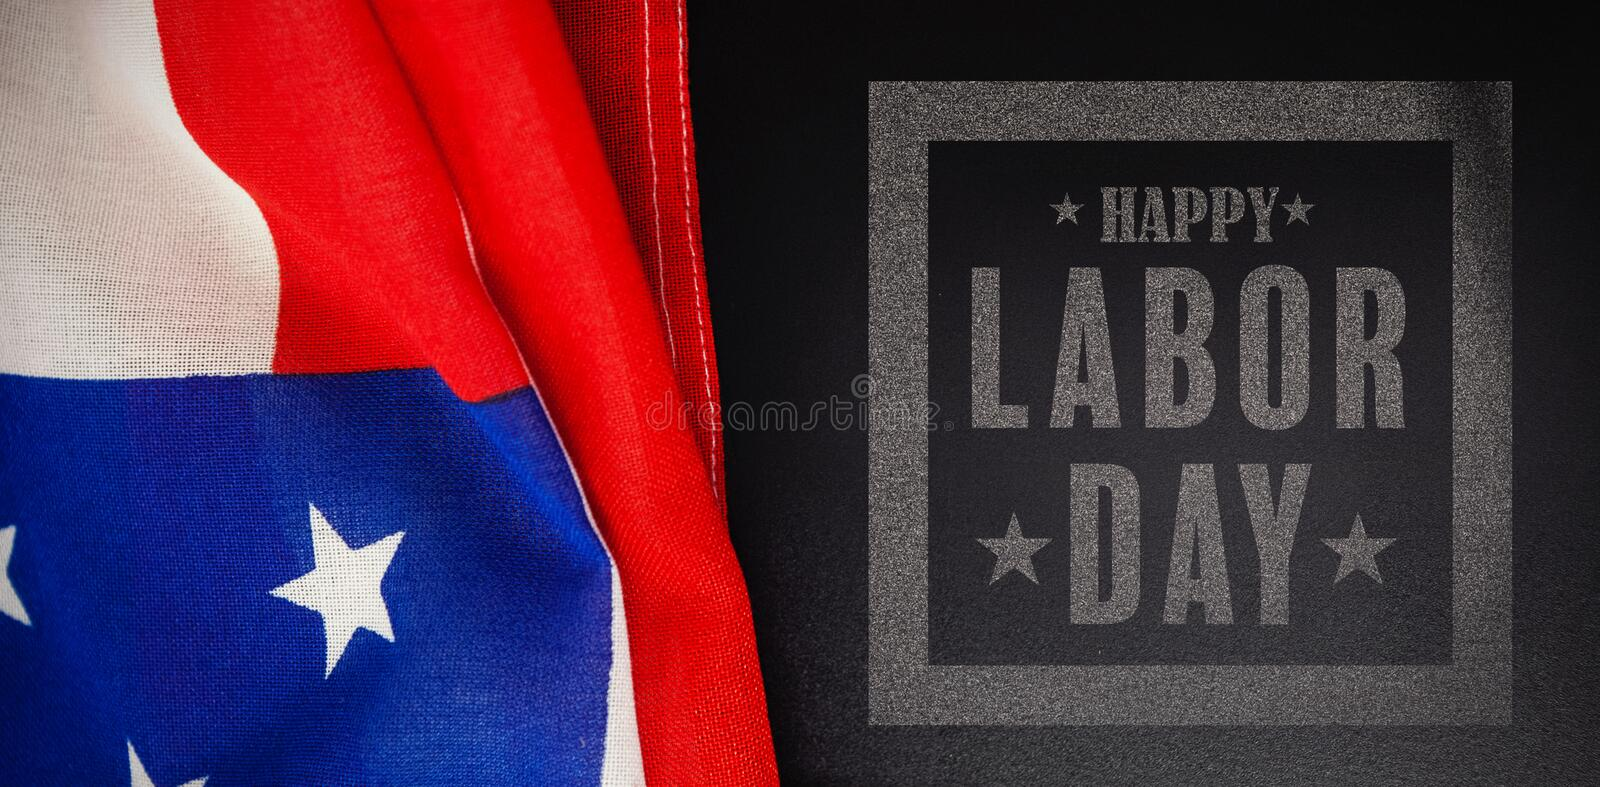 Composite image of composite image of happy labor day poster. Composite image of happy labor day poster against american flag and blank slate on wooden table stock image